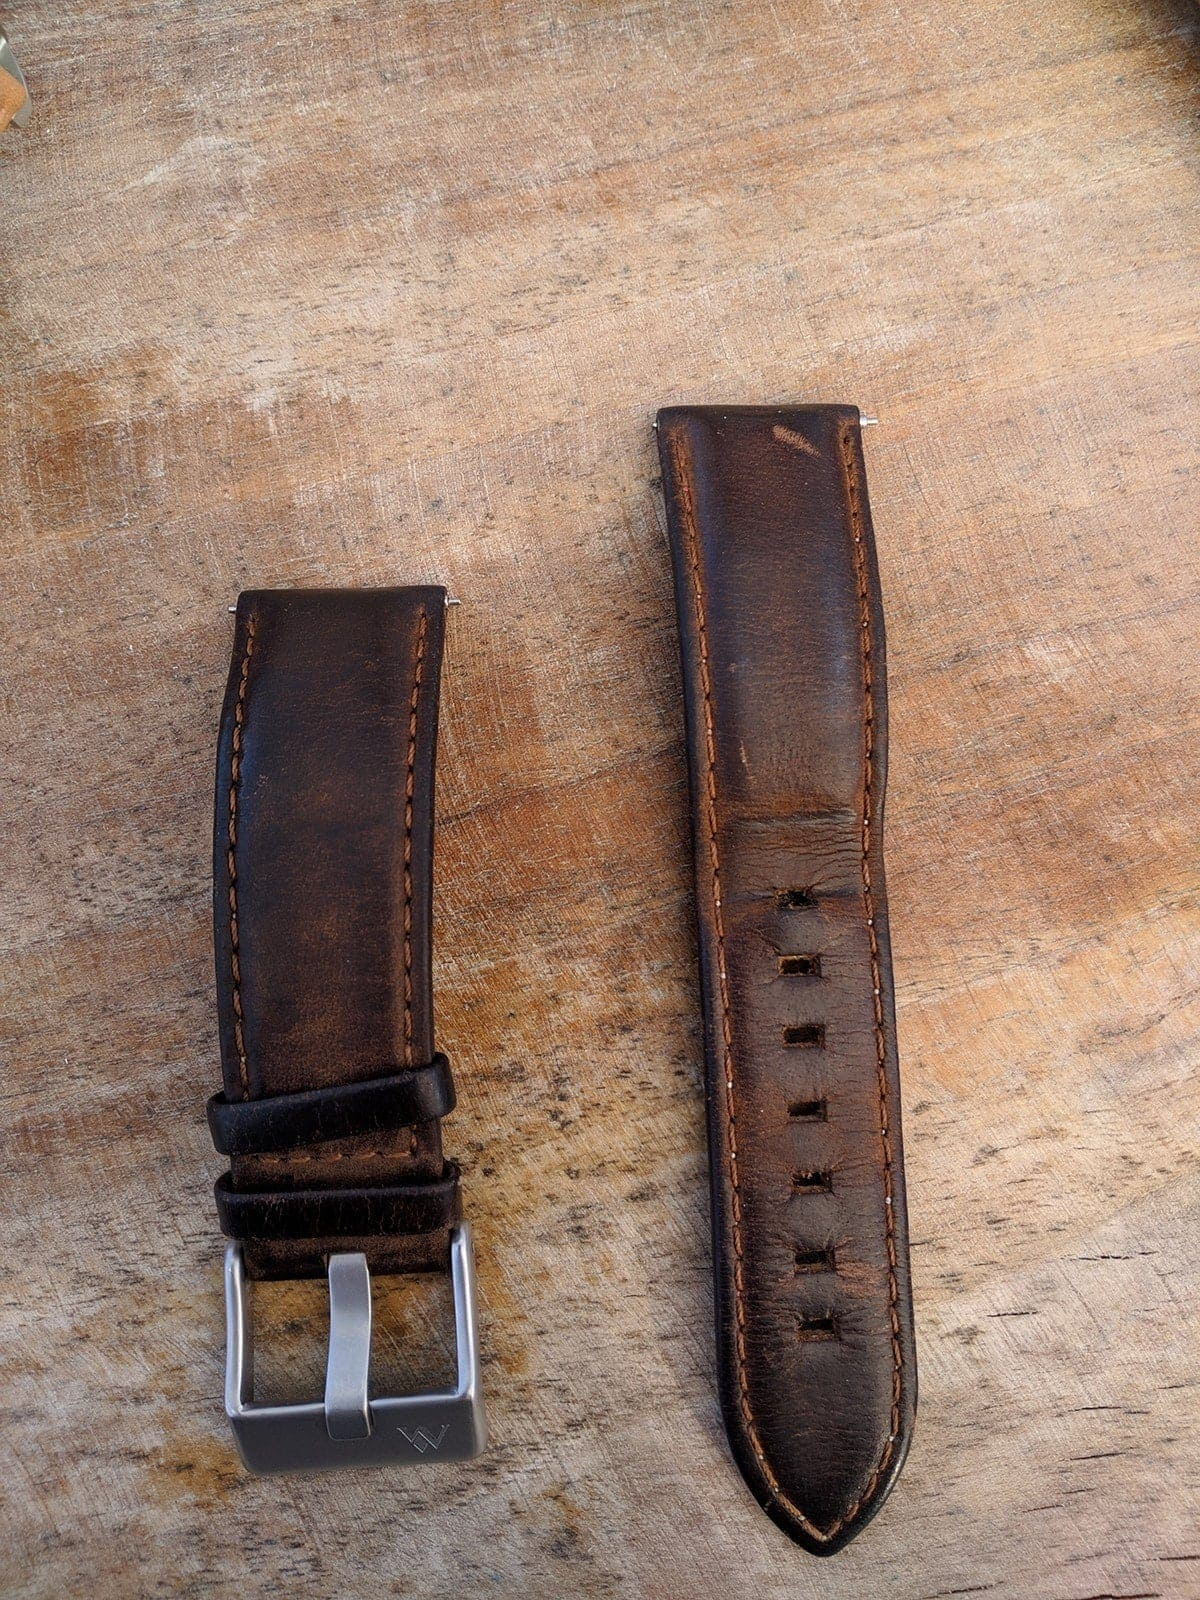 hazelnut brown leather strap in vintage style